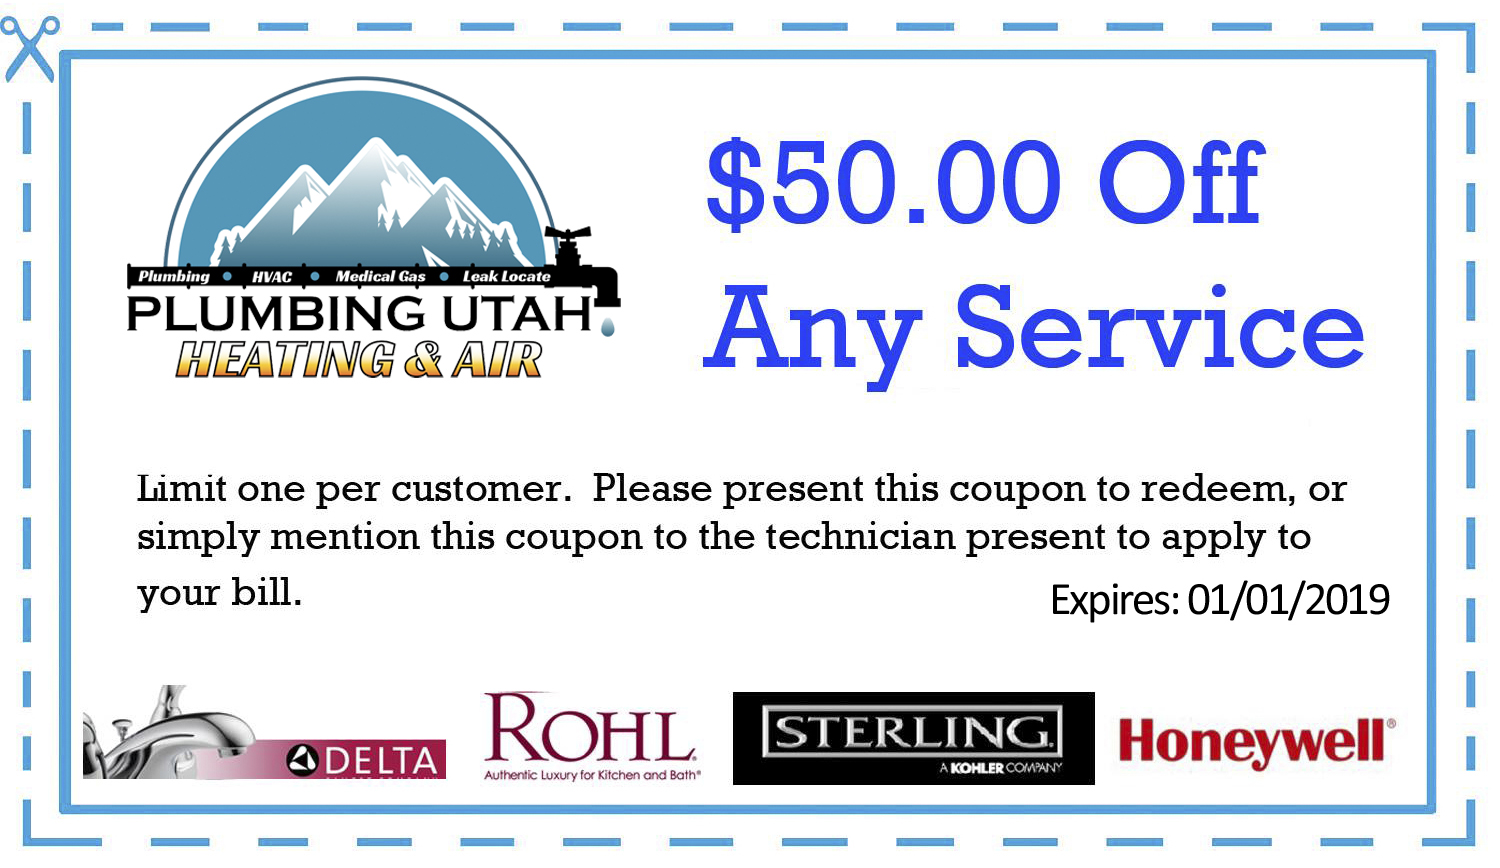 plumbing-utah-heating-air-plumbing-coupon-1